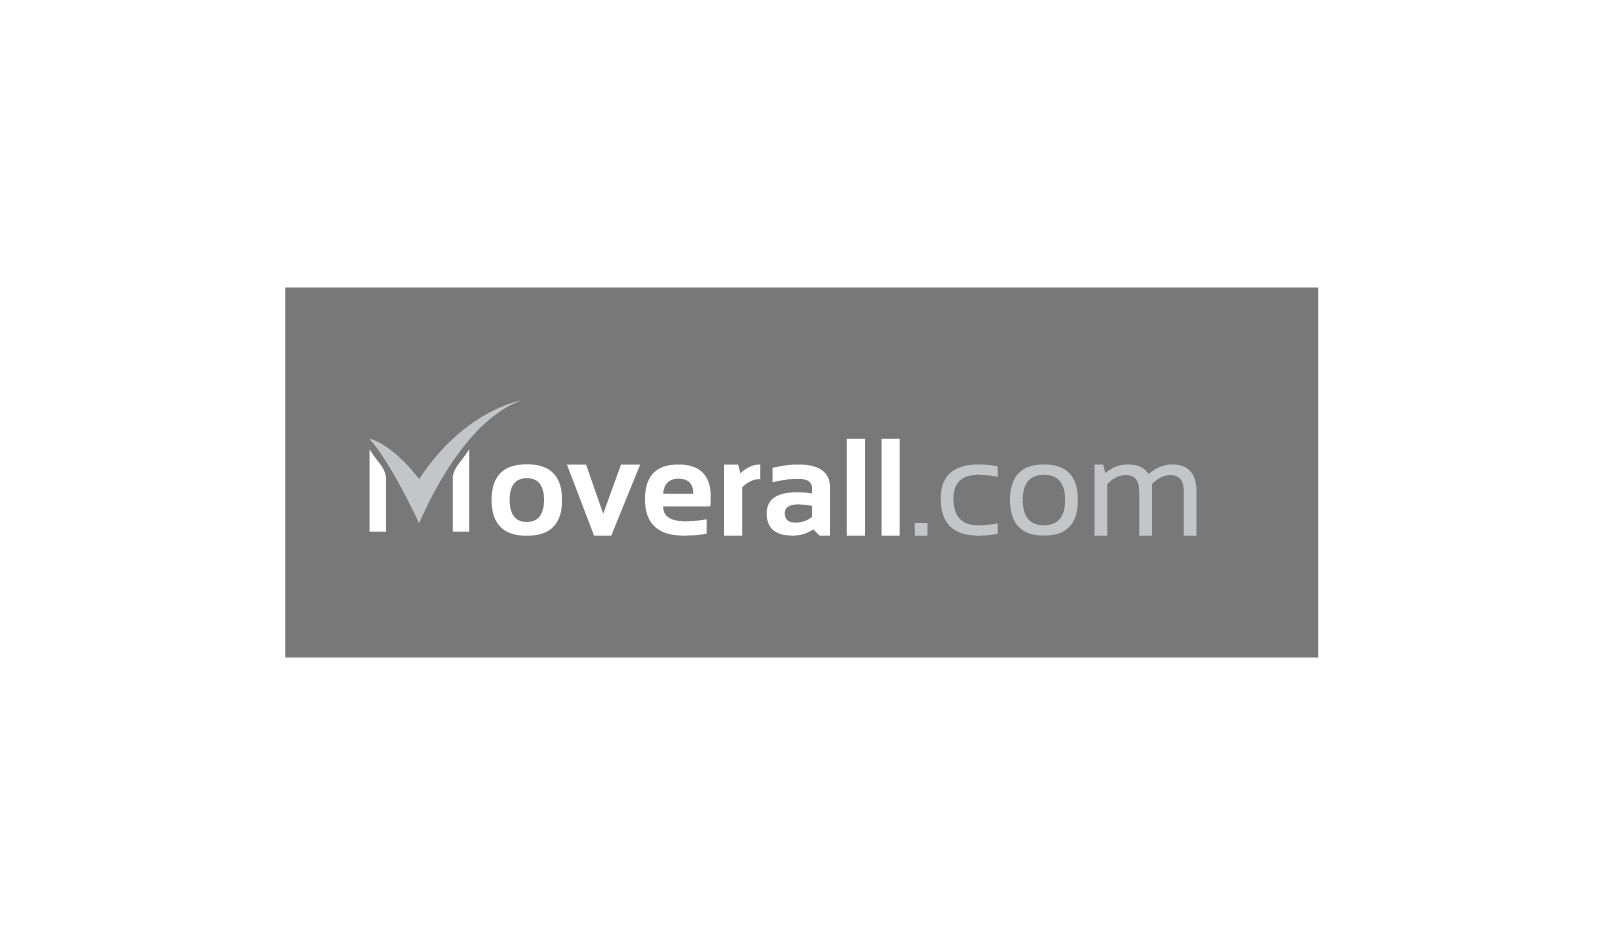 Moverall